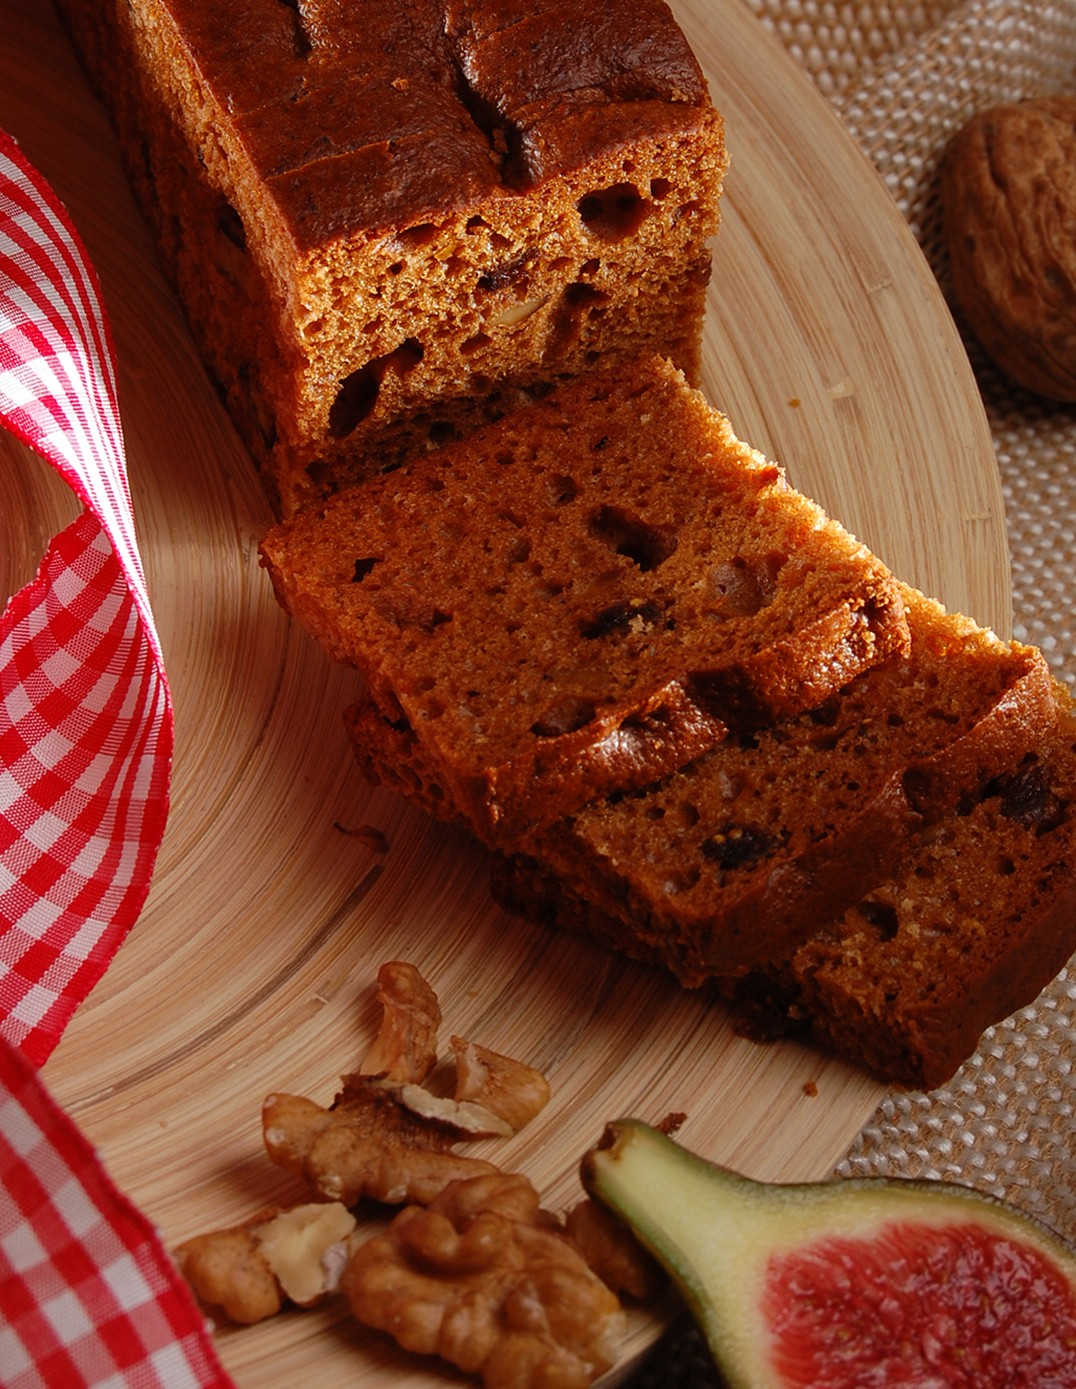 Gingerbread with figs and walnuts, pre-sliced